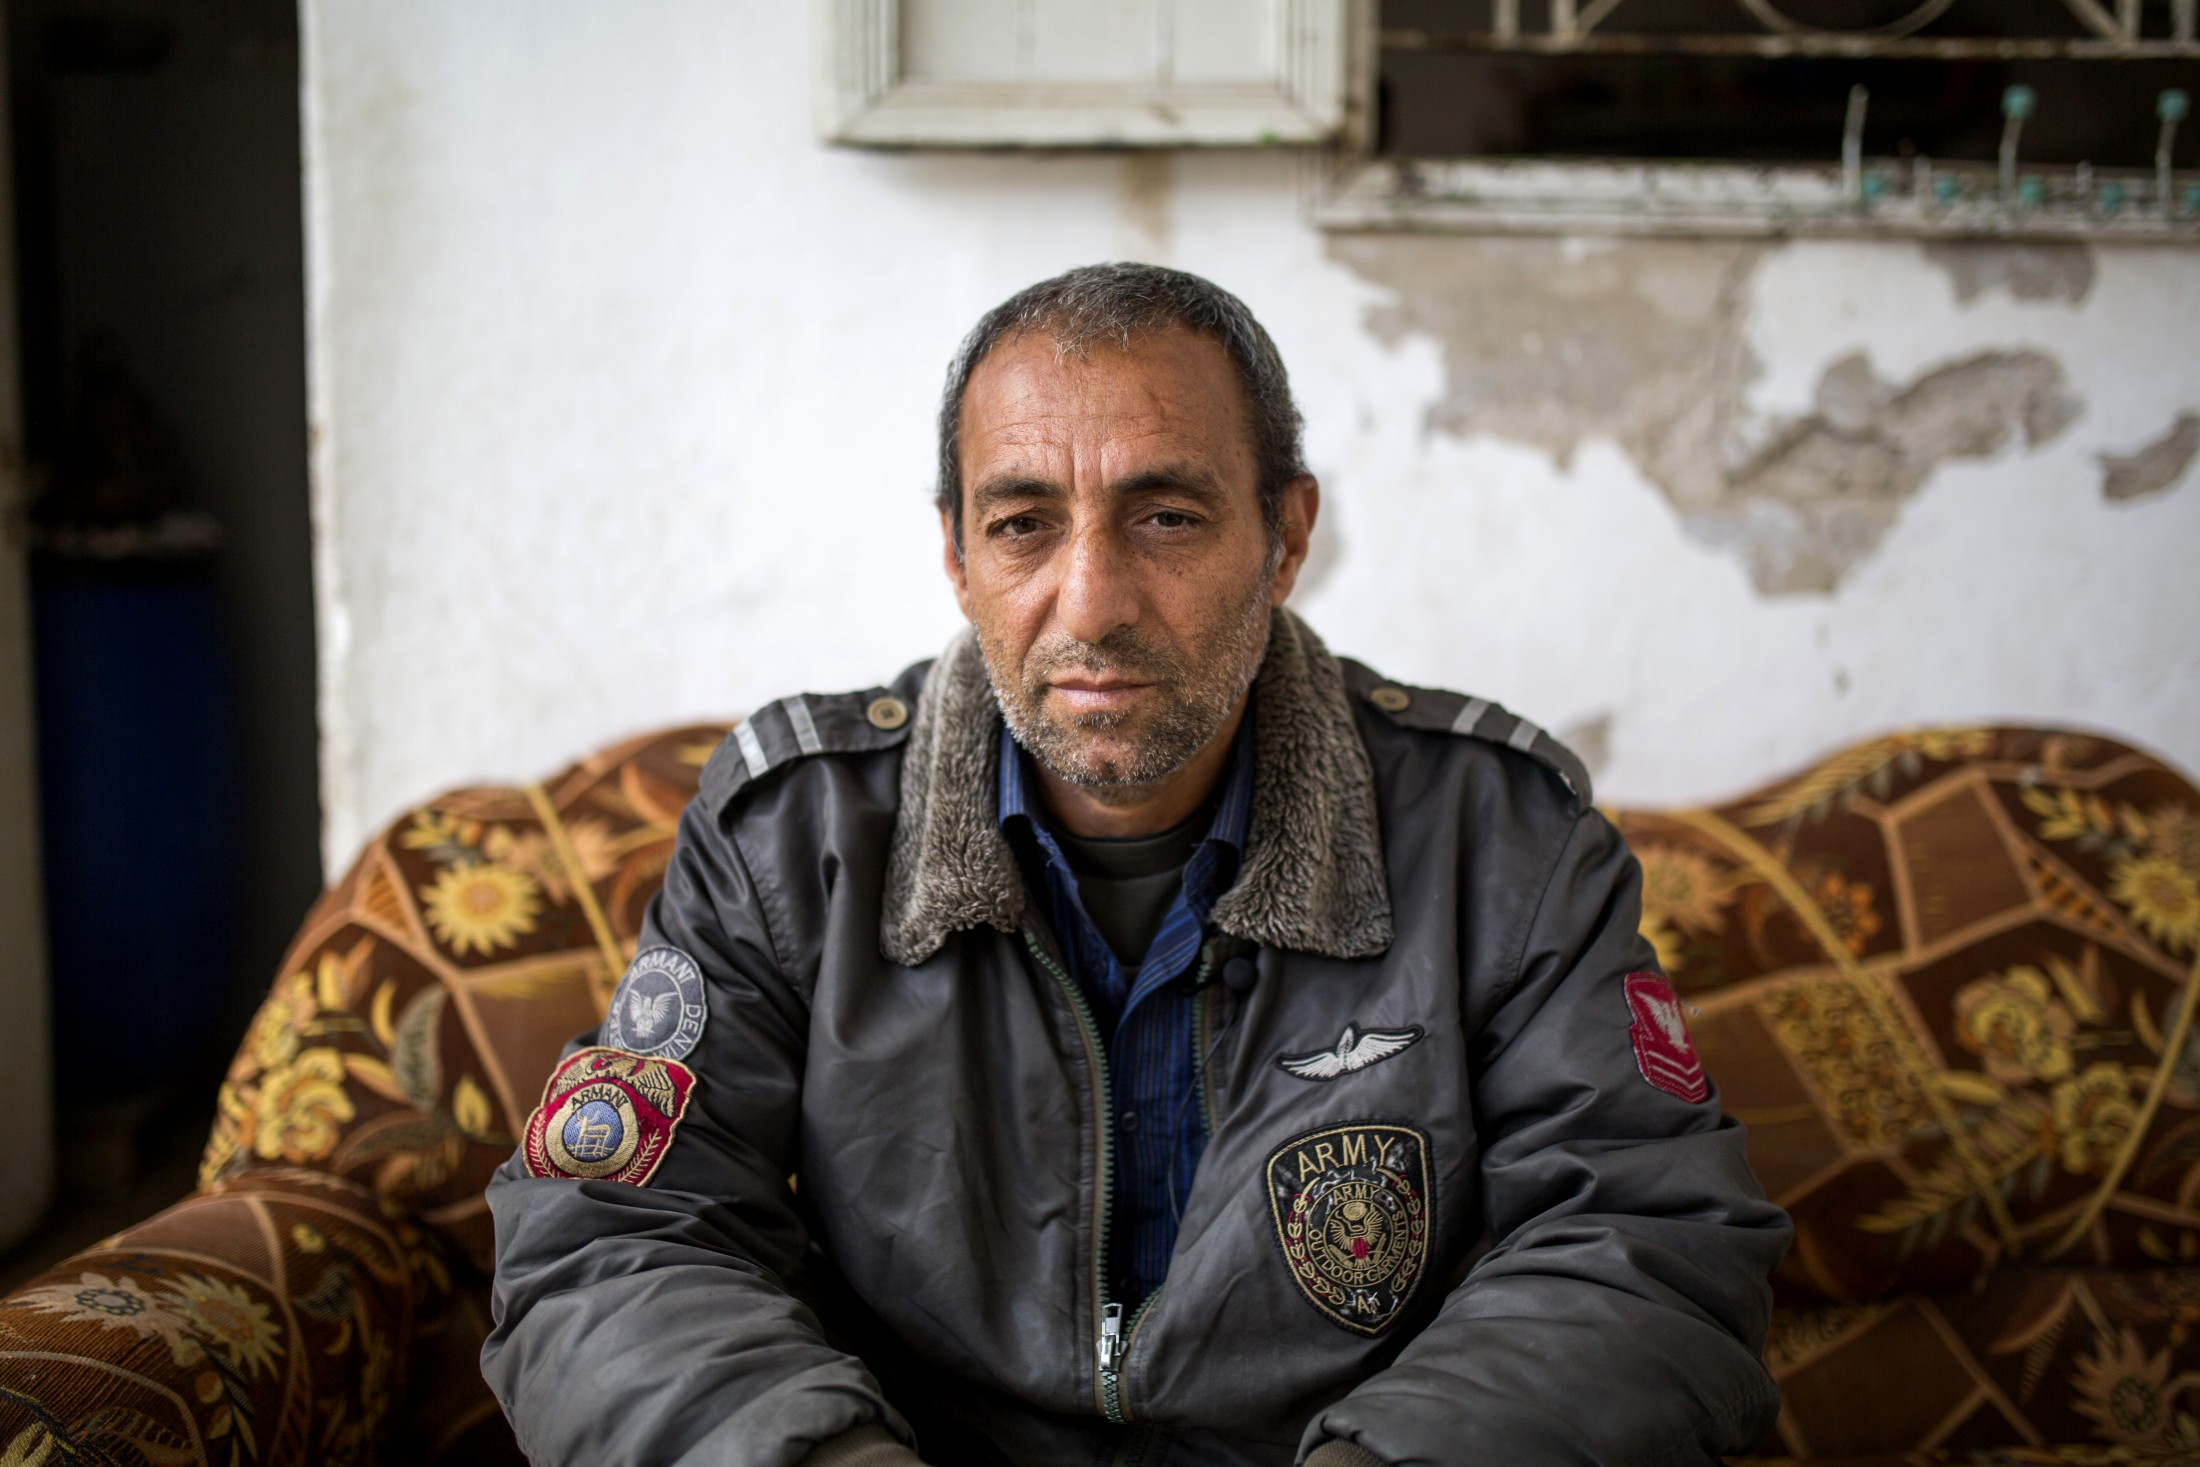 Abdelhadi Majdalawi likes to chat about politics and his past.